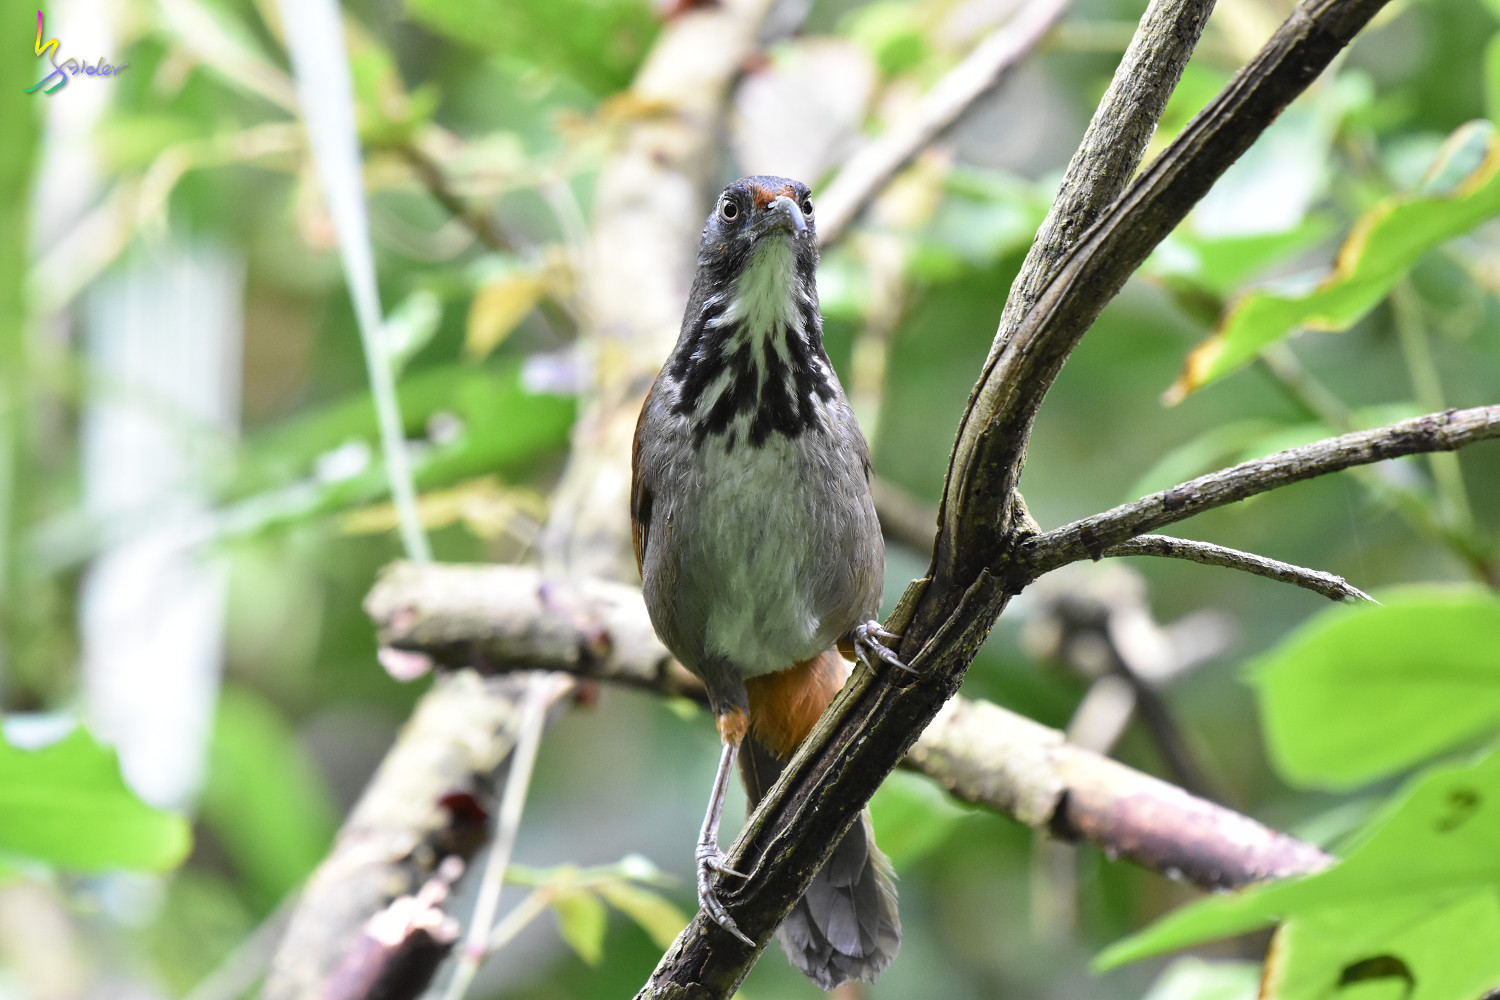 Rusty-cheeked_Scimitar-Babbler_0651